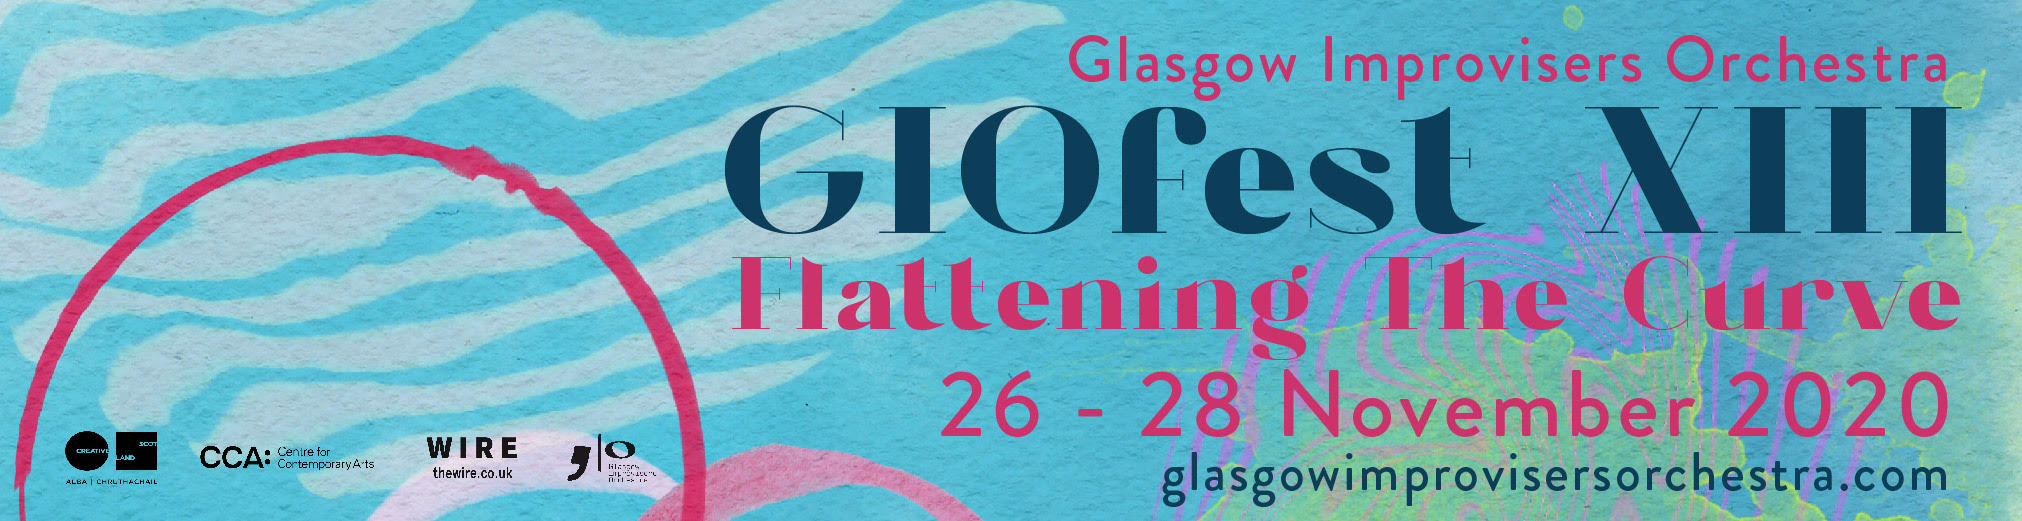 The Glasgow Improvisers Orchestra present GIOfest XIII: 26-28 November 2020. Streamed across the internet for free.